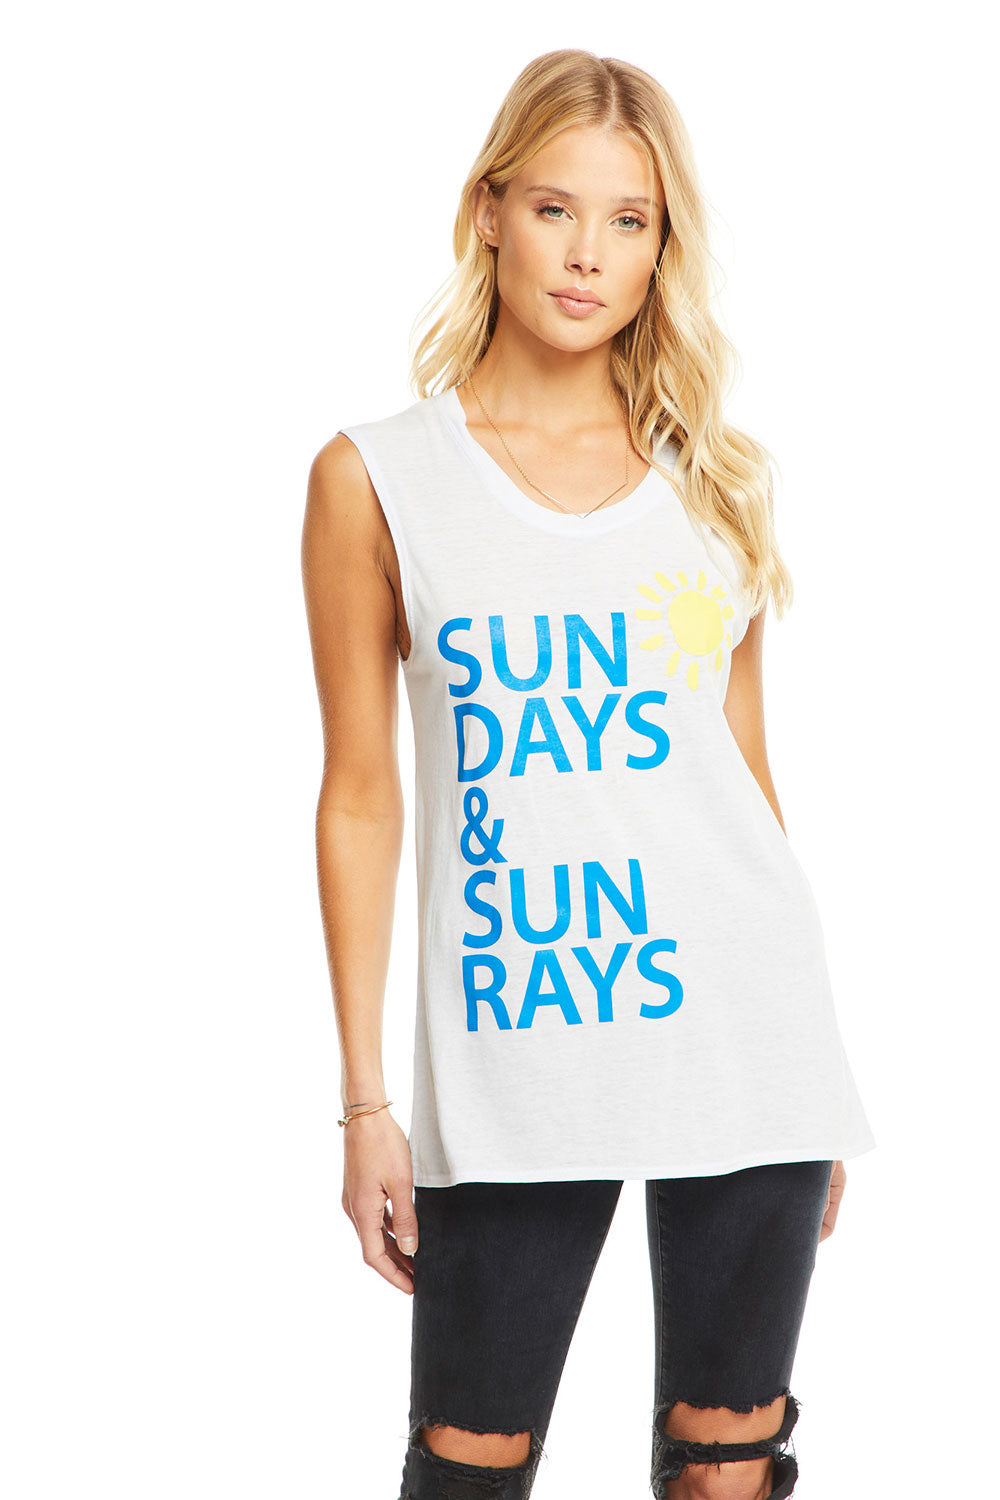 Sun Rays, WOMENS, chaserbrand.com,chaser clothing,chaser apparel,chaser los angeles